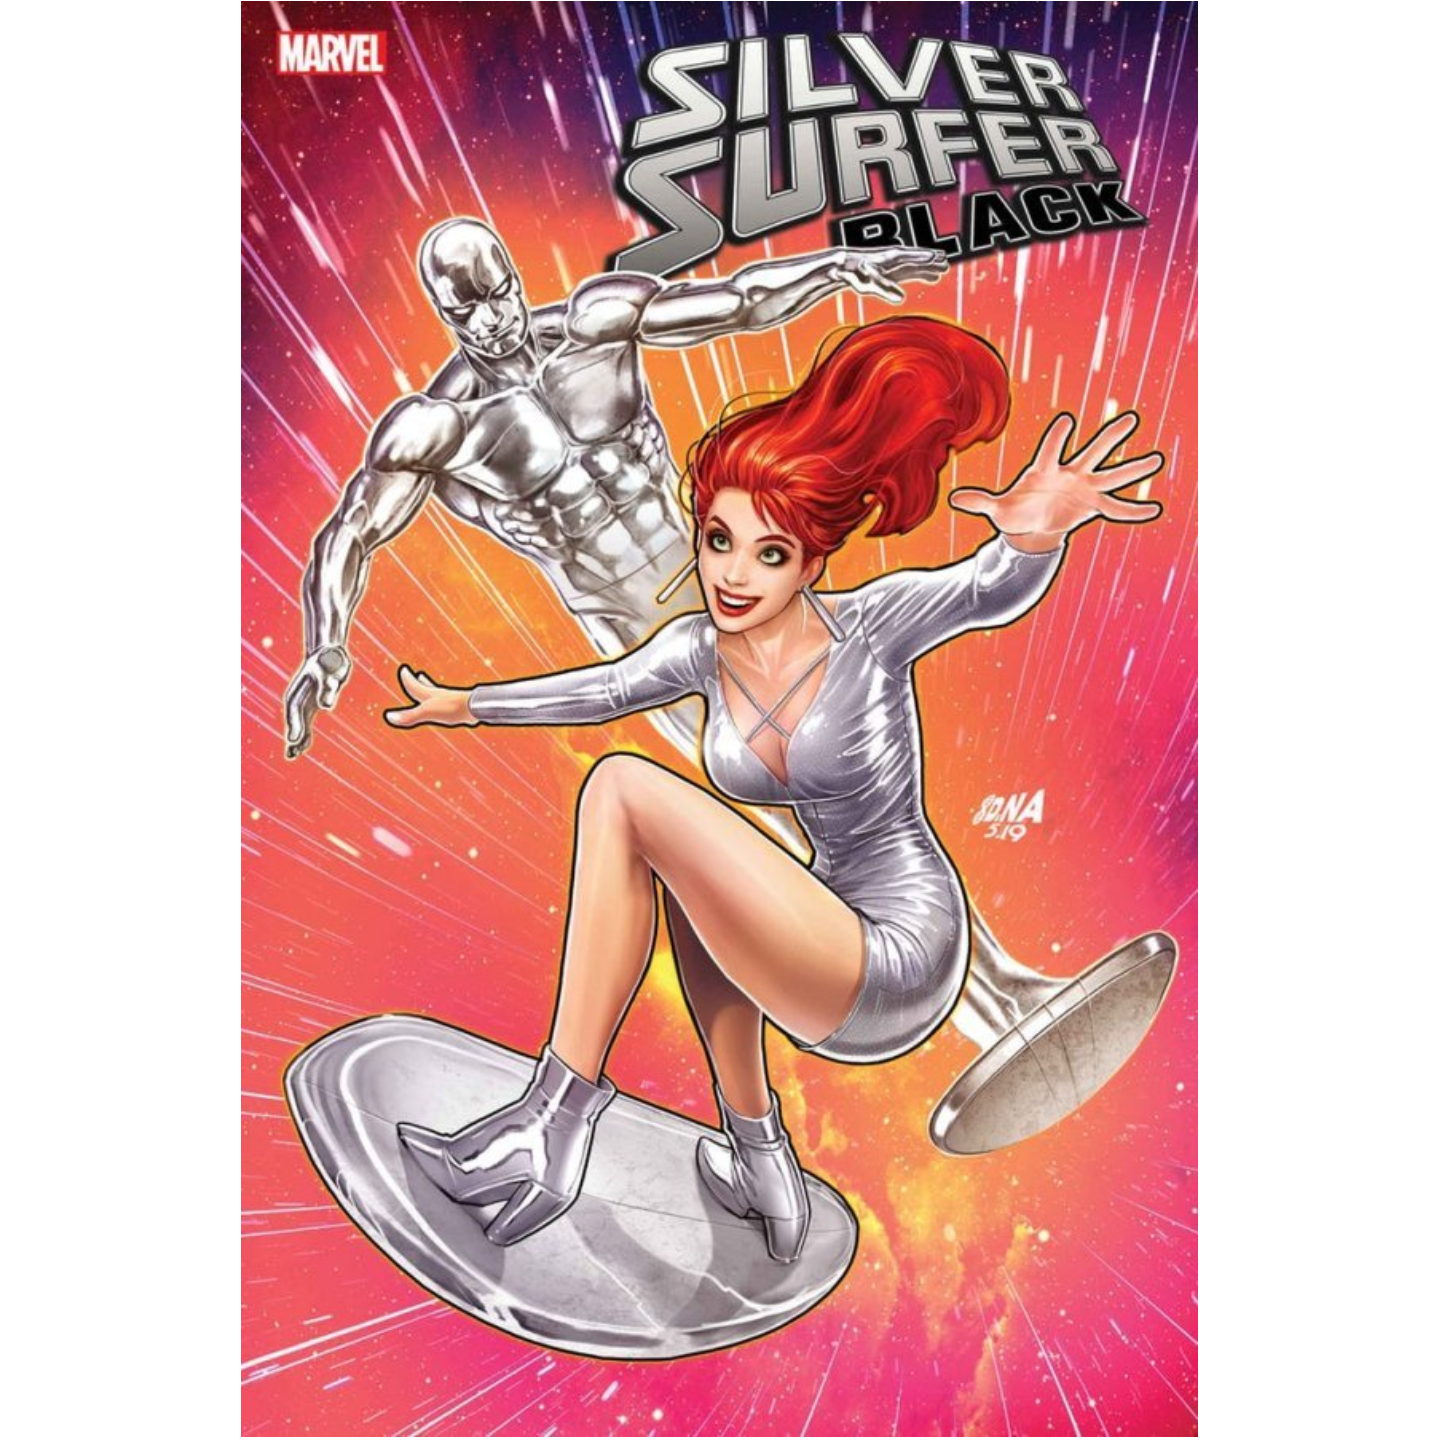 SILVER SURFER: BLACK #5 DAVID NAKAYAMA MARY JANE VARIANT